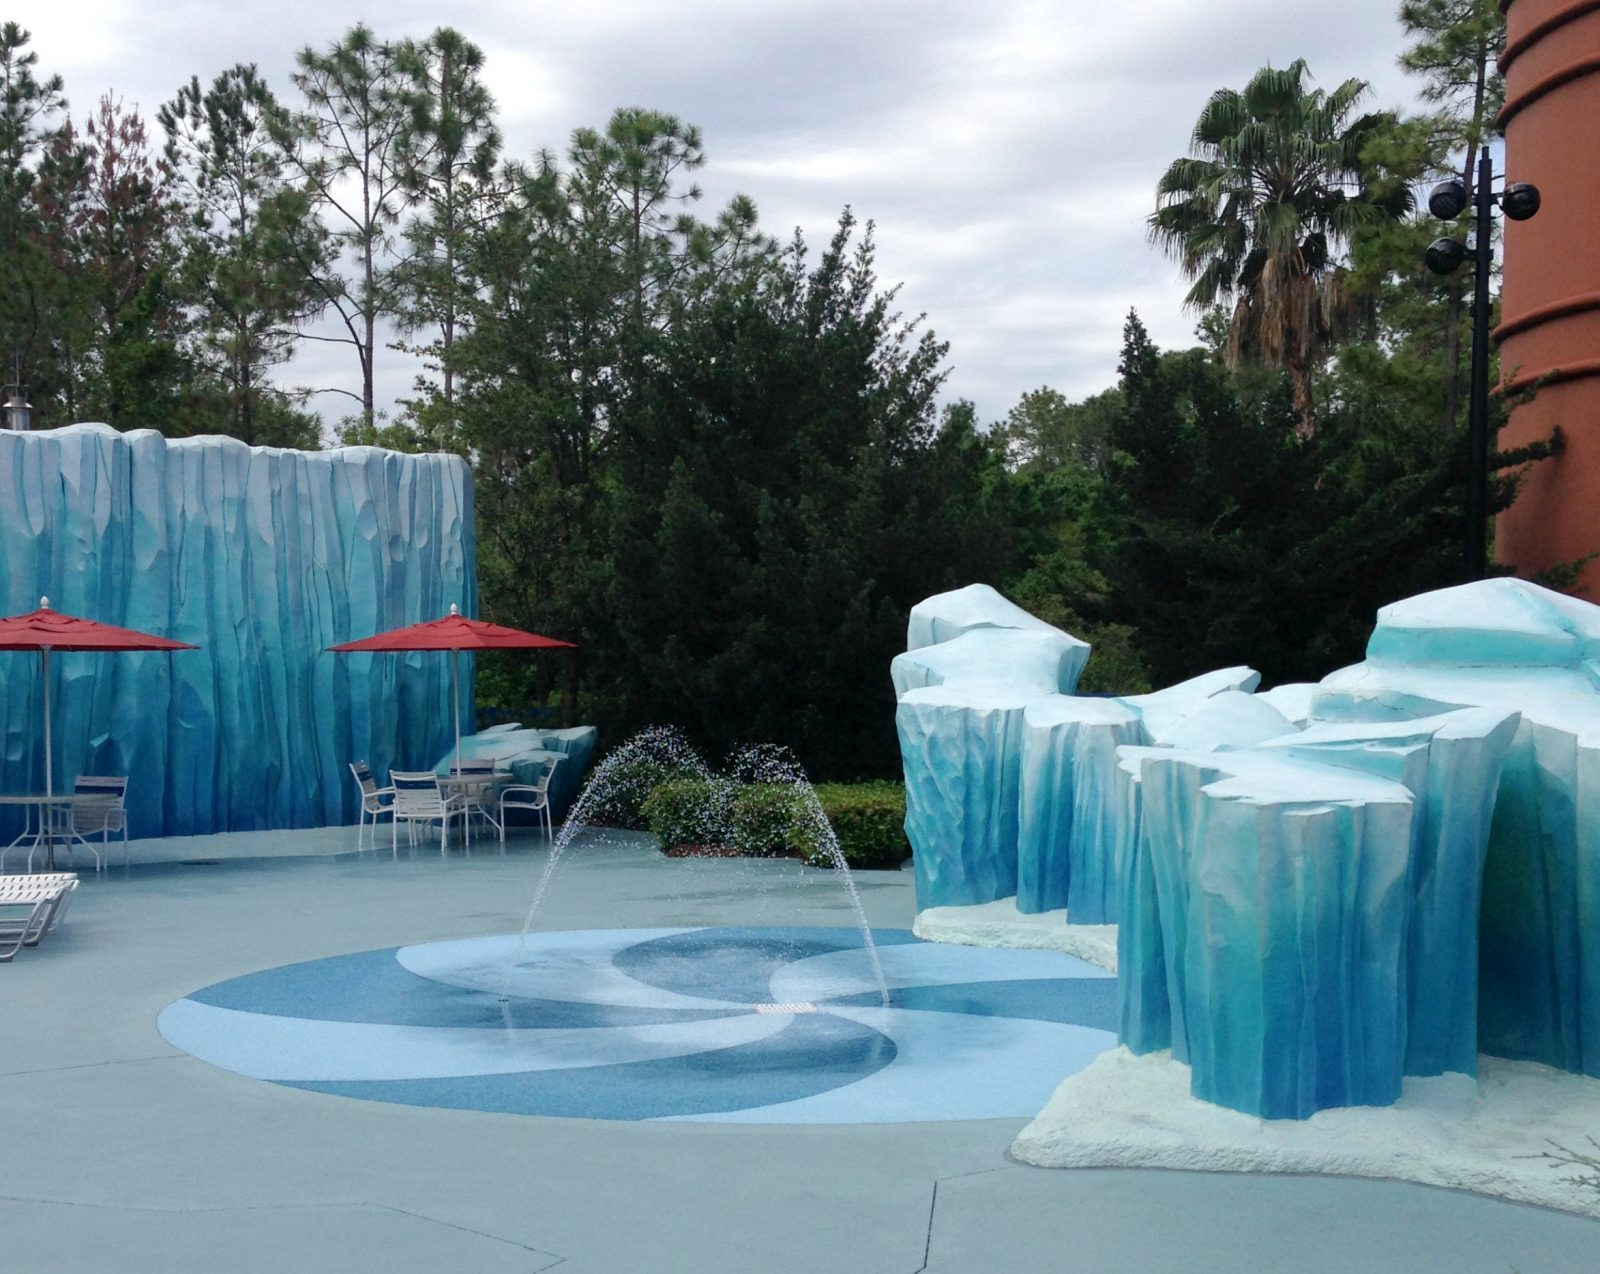 The best and worst of the Value Resorts at Walt Disney World! Not all Value resorts are created equal, so here are my picks for the best and worst options. #familyvacation #disneyworld